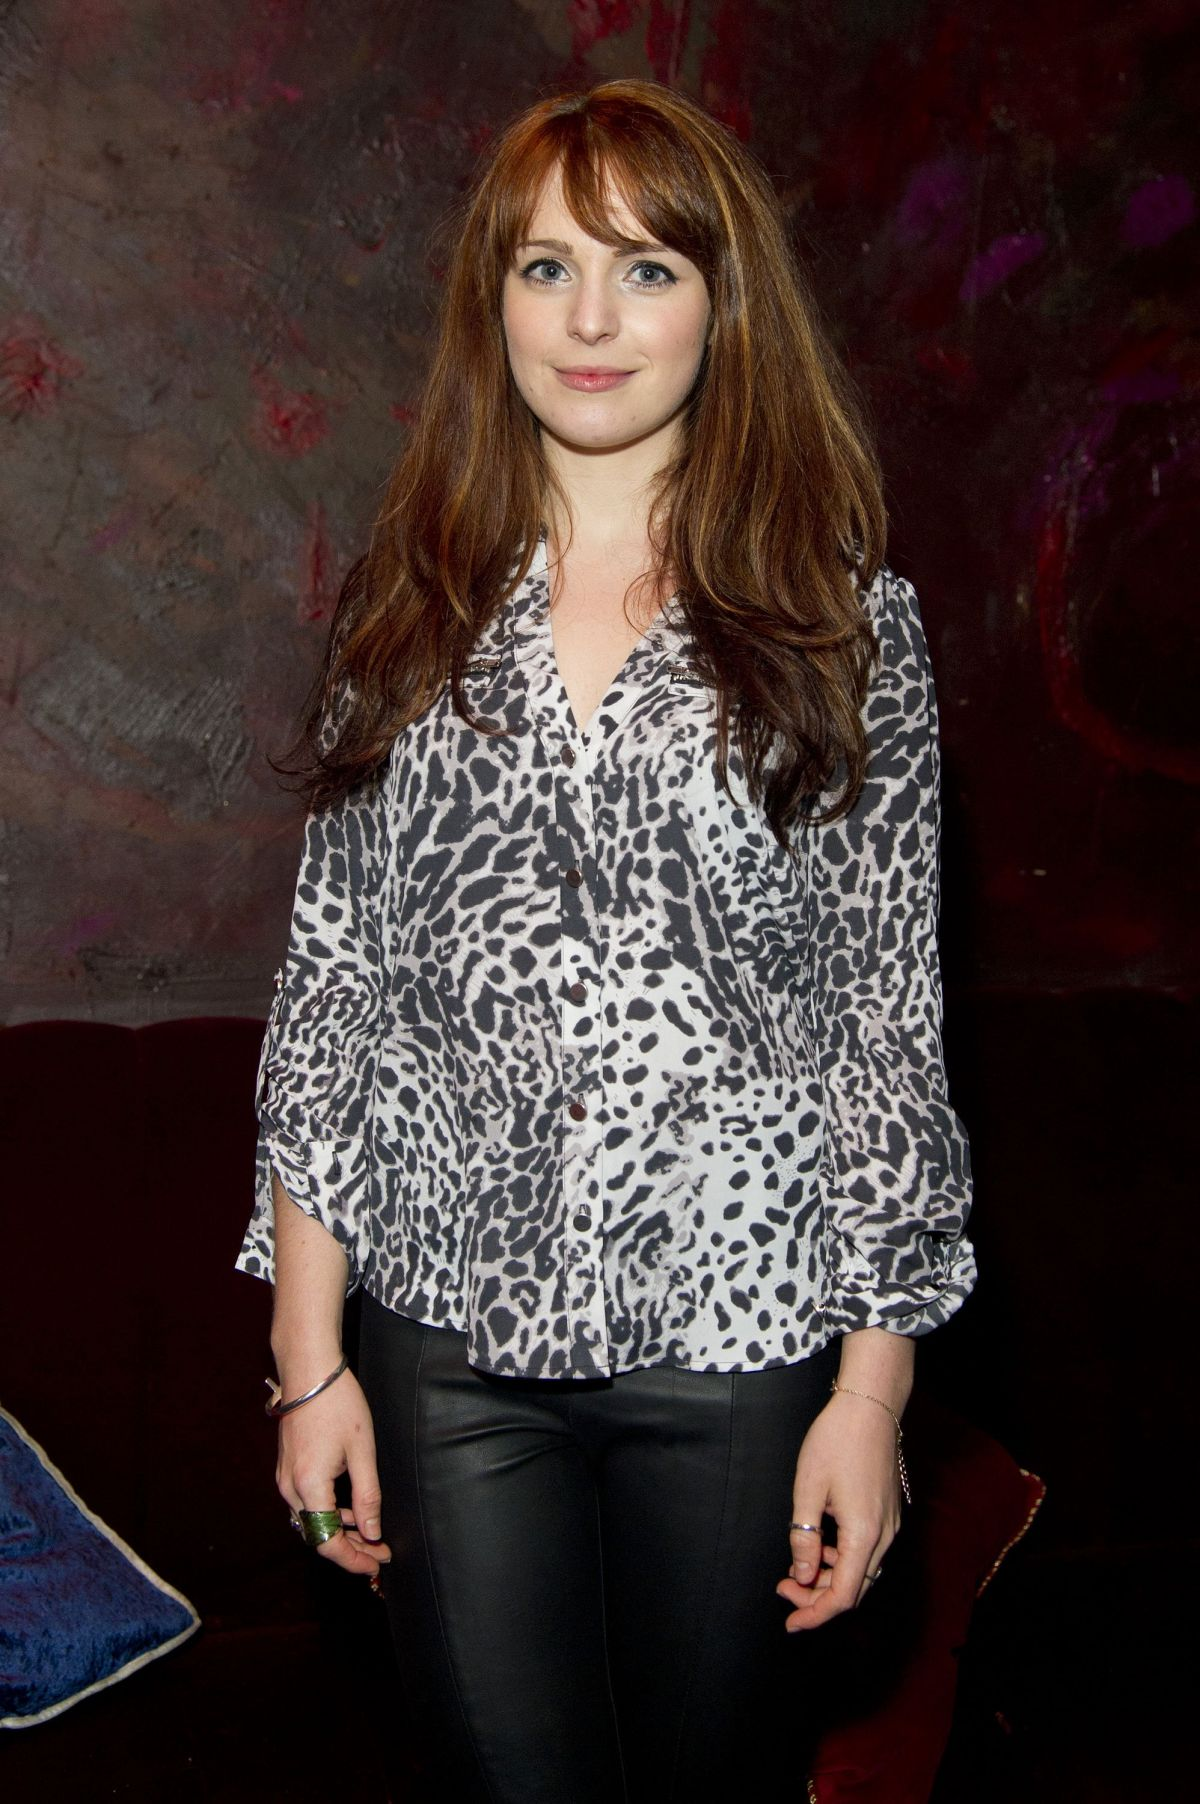 TAMLA KARI at Mojo After Party in London 10/13/2015